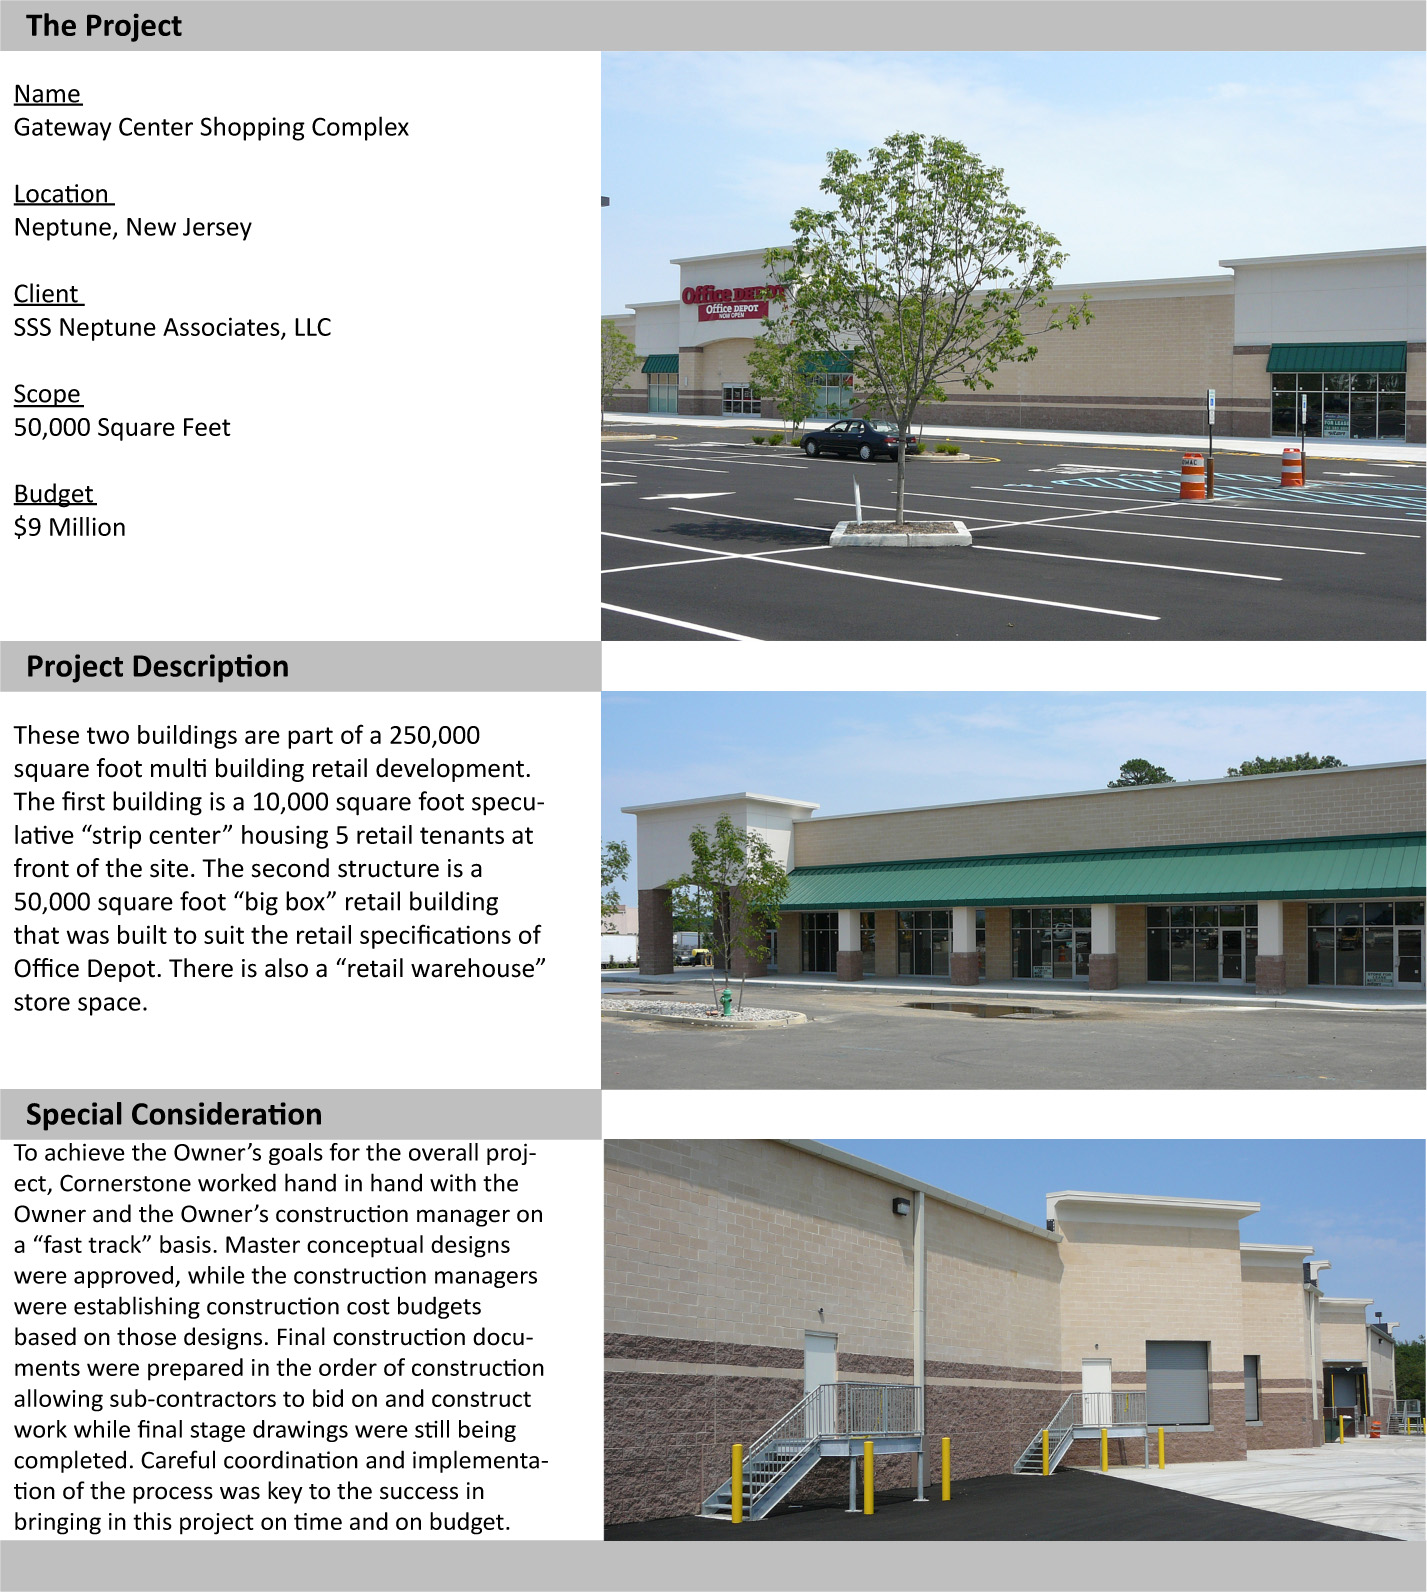 Aaa Car Care And Travel Center Cornerstone Architectural